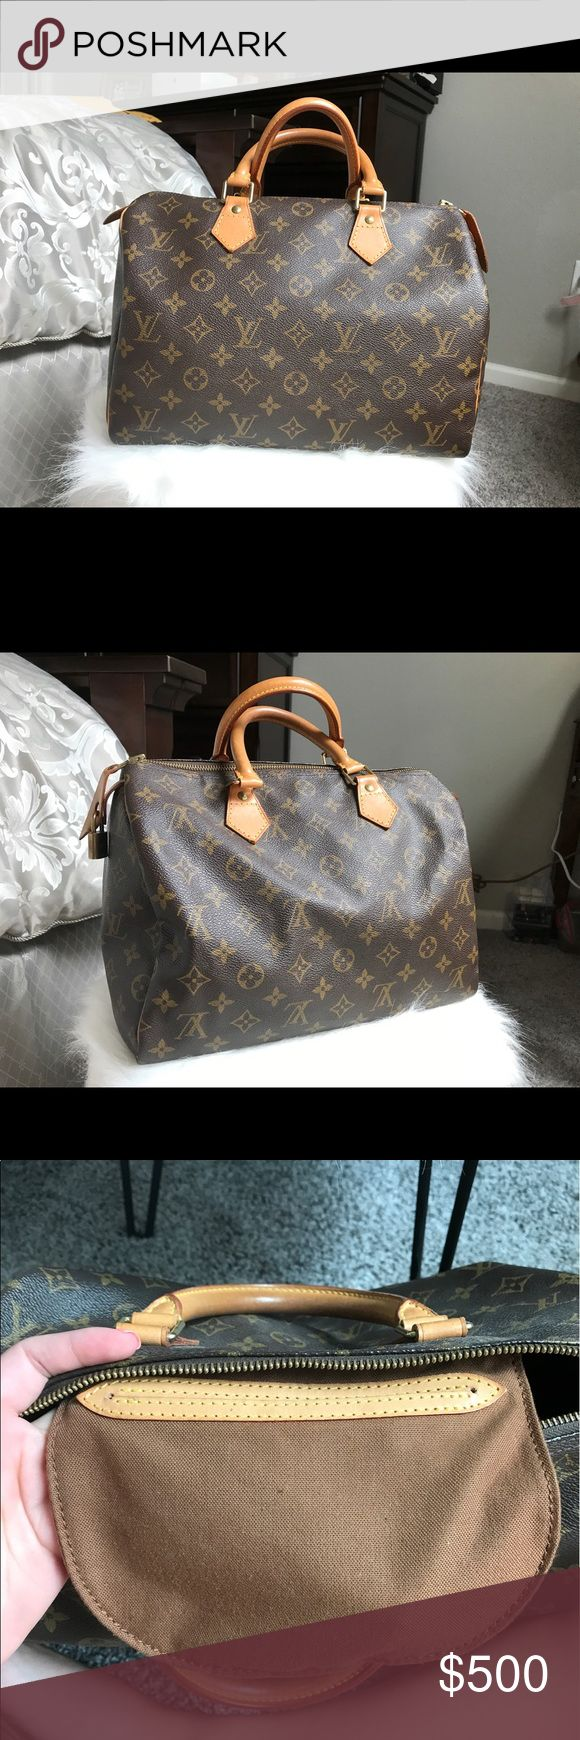 Louis Vuitton Speedy 30 100% AUTHENTIC LADIES. I am selling my Louis Vuitton Speedy 30. All of the piping is still in amazing shape! Also the straps are now a beautiful Carmel color! I do NOT have a key, but the lock is attached to the purse! This handbag was a gift to me from the Houston Galleria in Texas. I will also give you the base inside the handbag to prevent sagging! I do not have a dust bag. Pictures were taken in natural lighting. ✨ NO TRADES! I need the money to go back to…